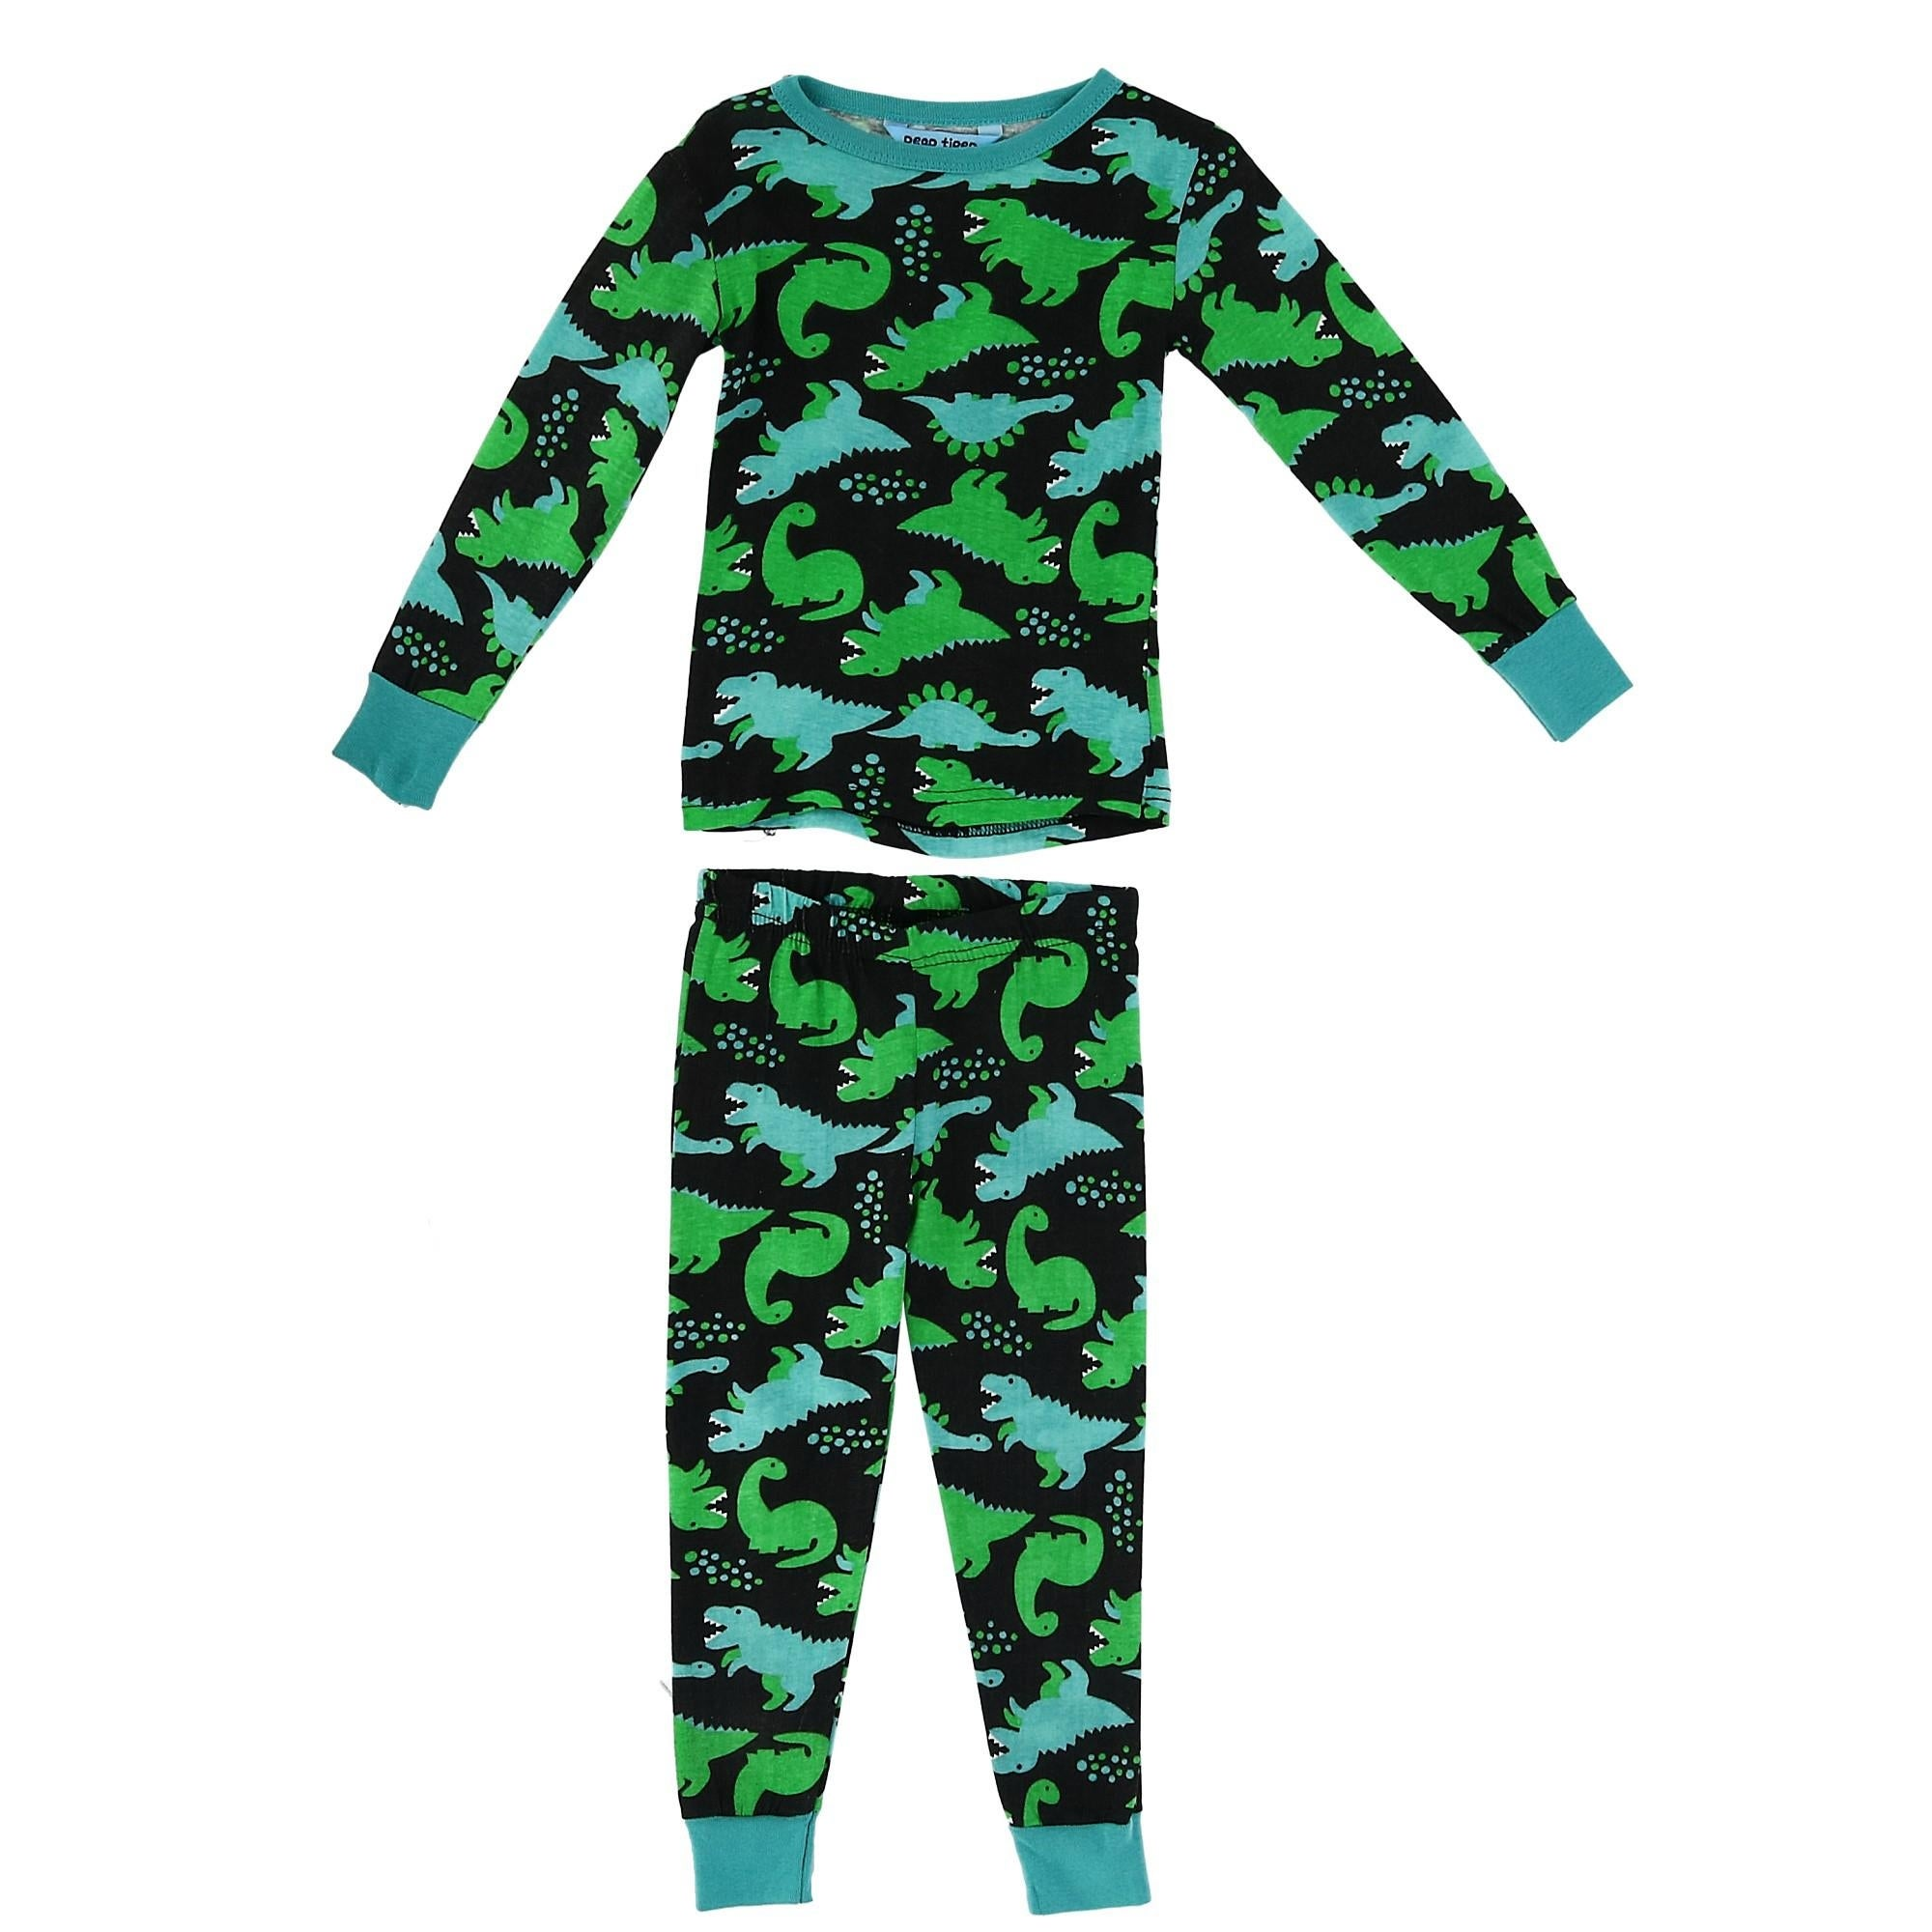 fcf7742b120f Buy Boys  Pajamas Online at Overstock